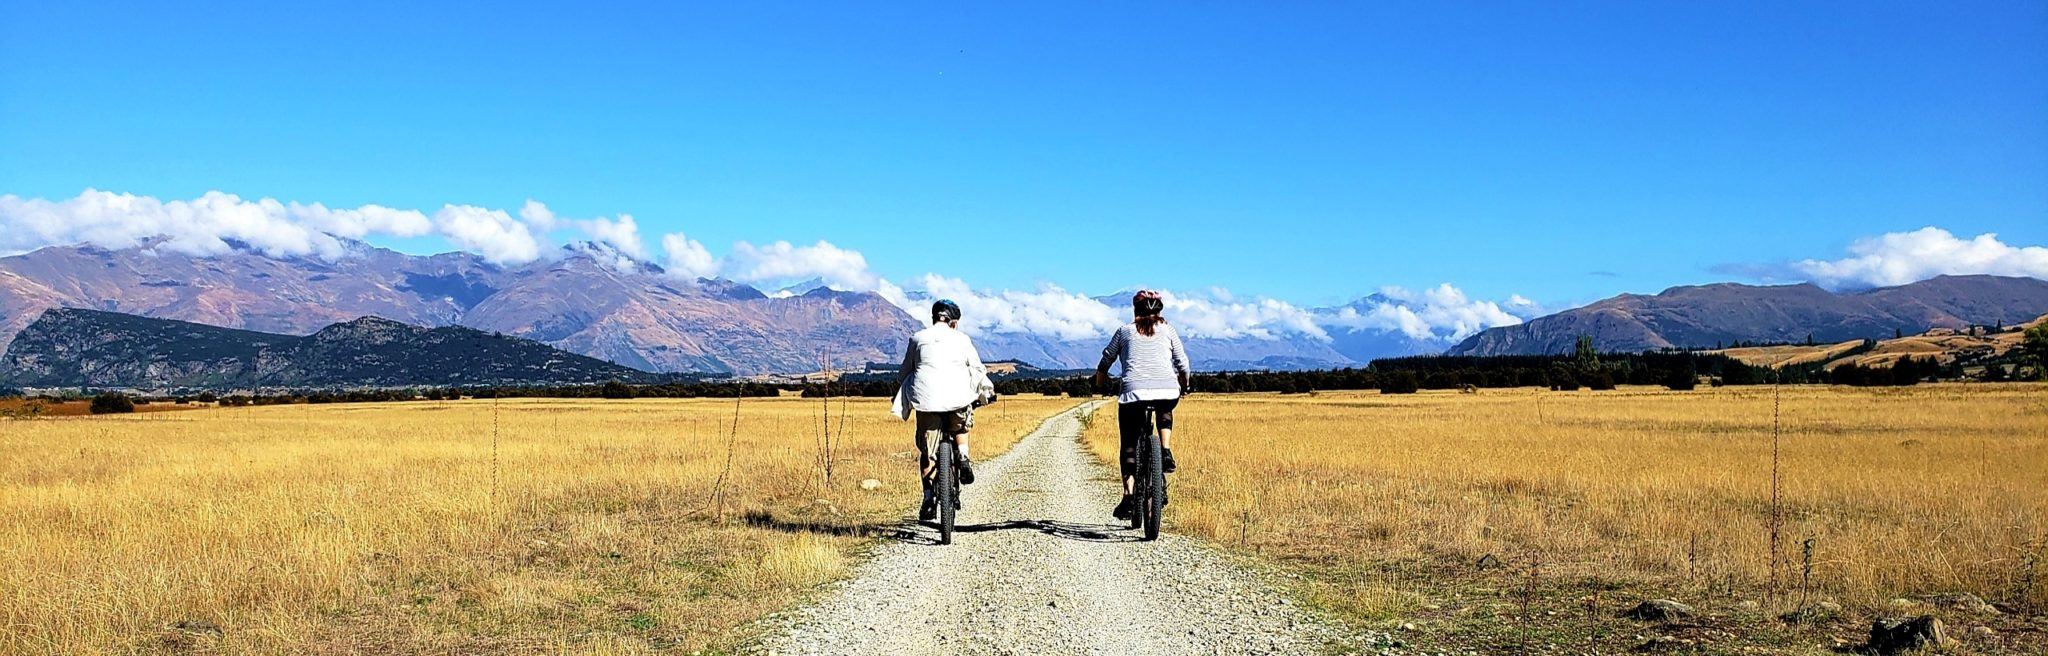 Wanaka Bike Guides Easy Bike Tour | Guided Tours